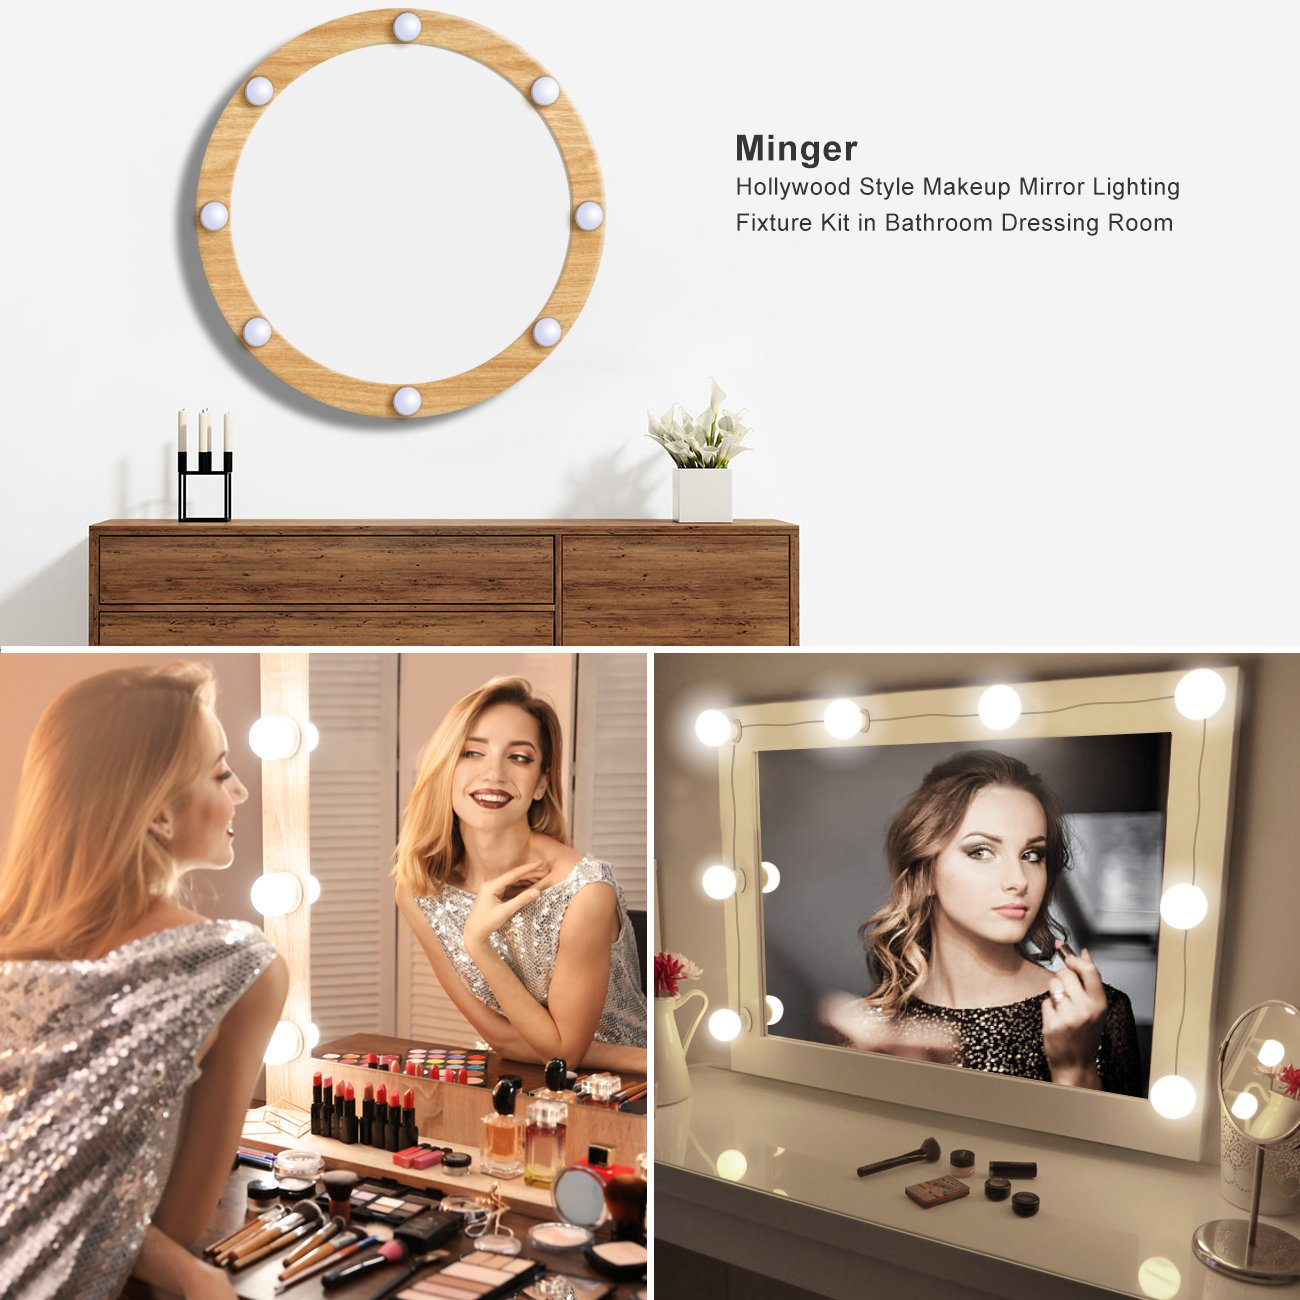 Minger Hollywood Style Vanity Mirror Lights 8 Dimmable Led Light Lighting Diagram Bulbs Kit Fixture Strip For Makeup In Bathroom Dressing Room Not